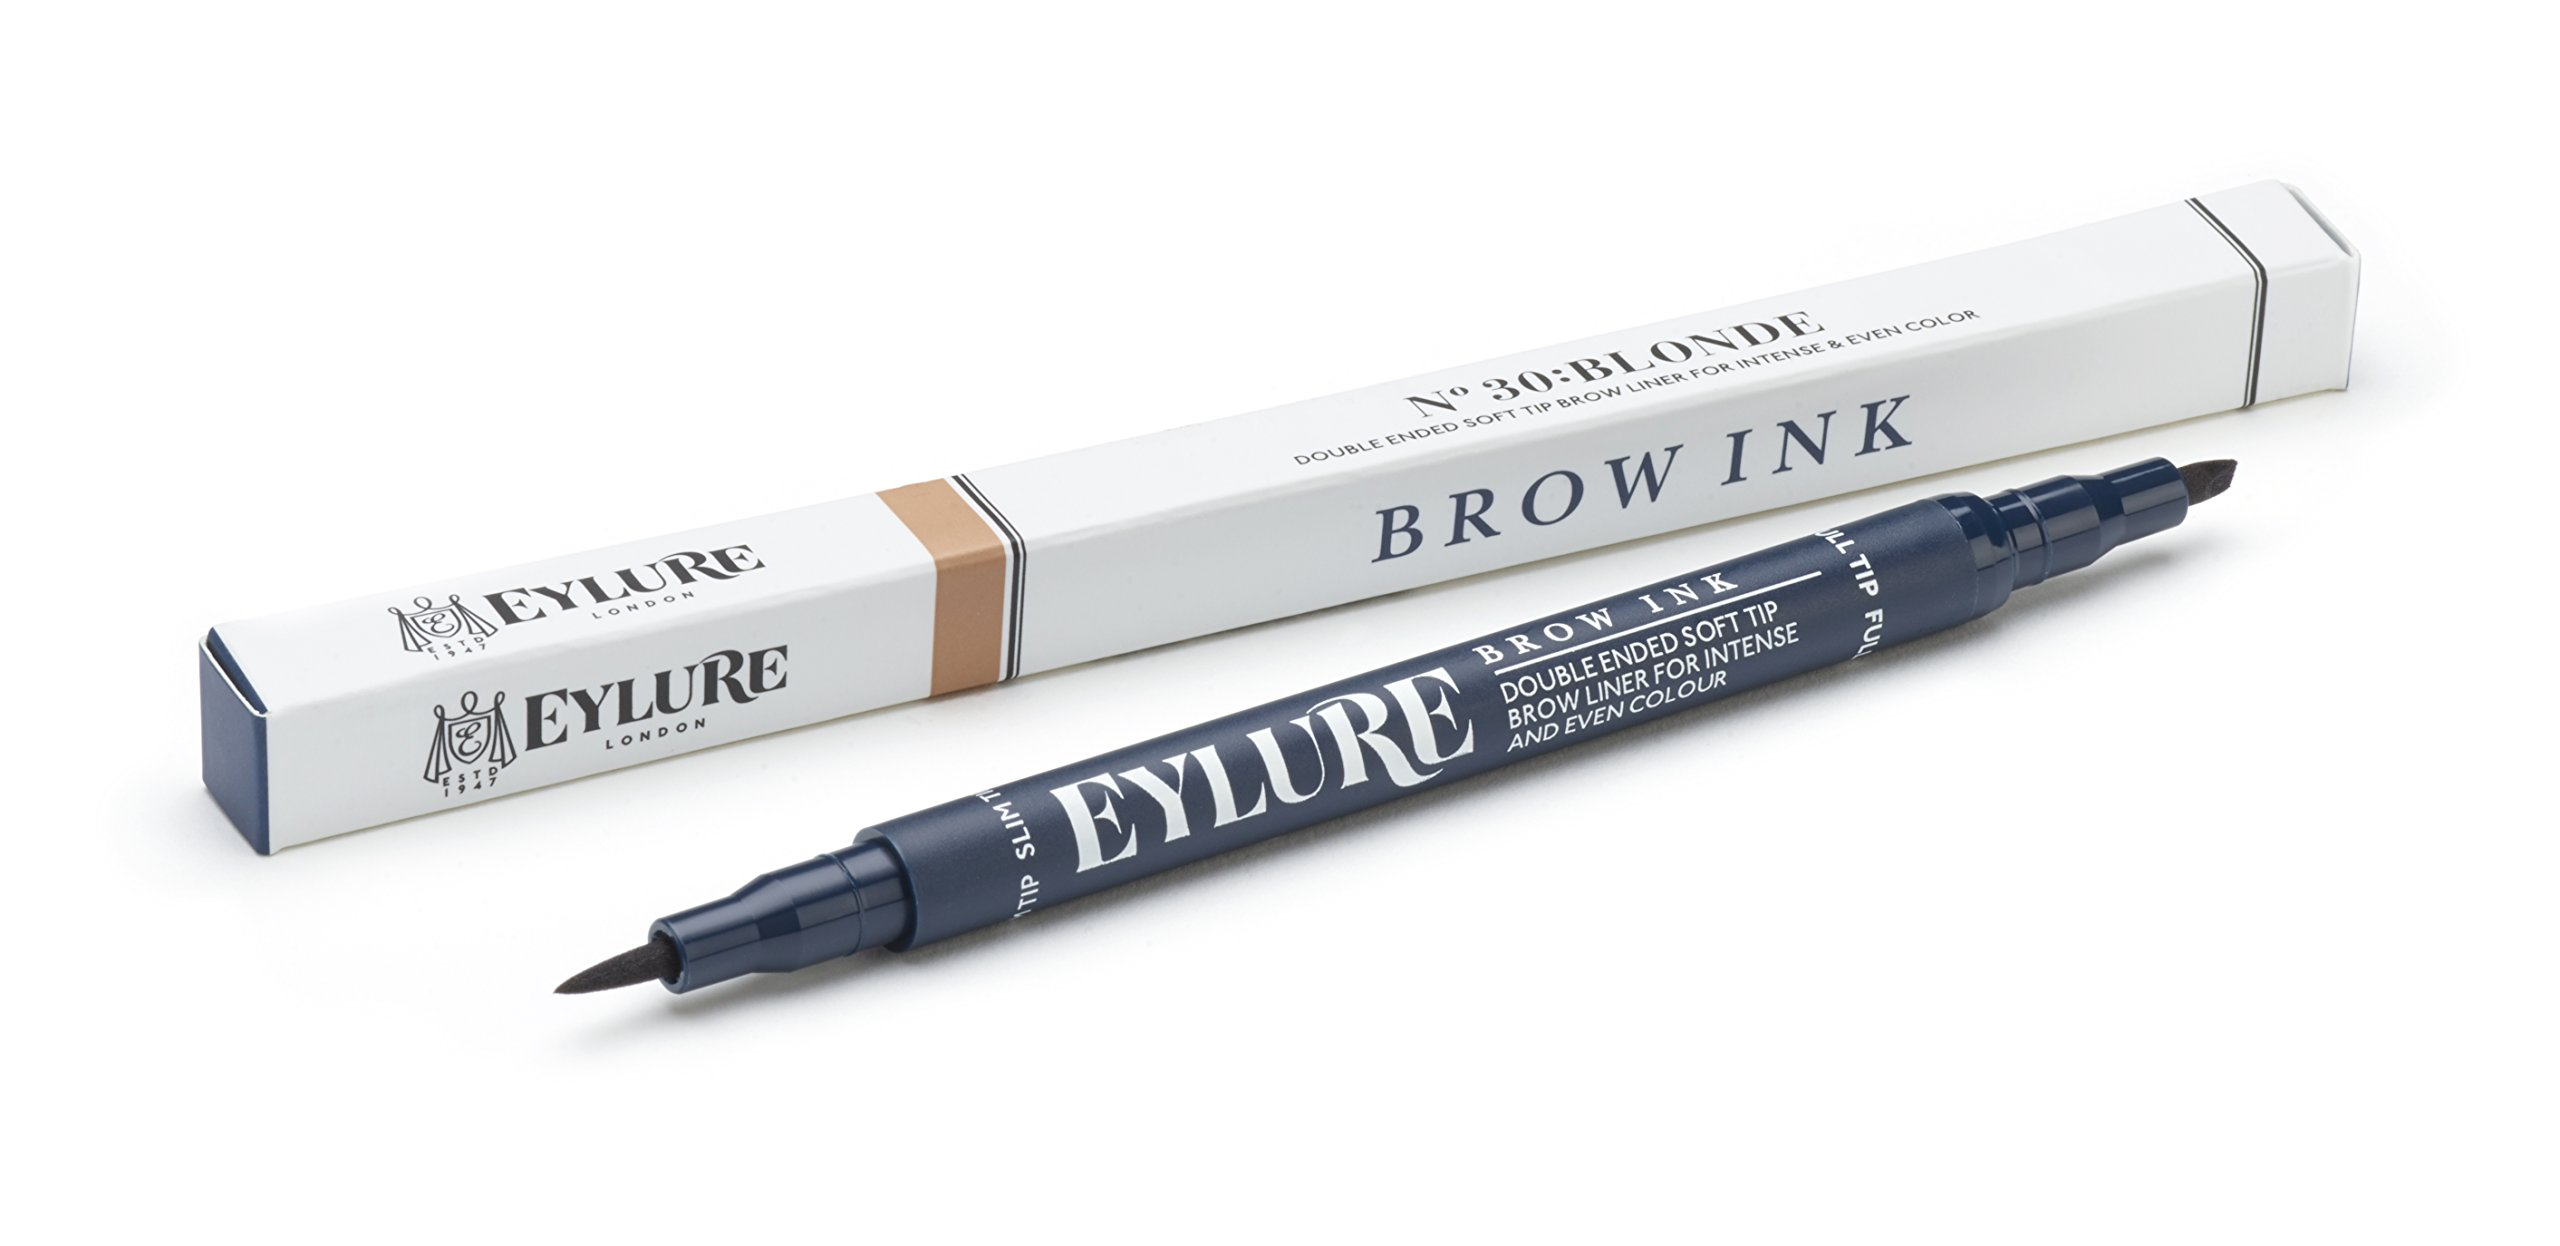 Eylure Defining and Shading Brow Ink, Blonde